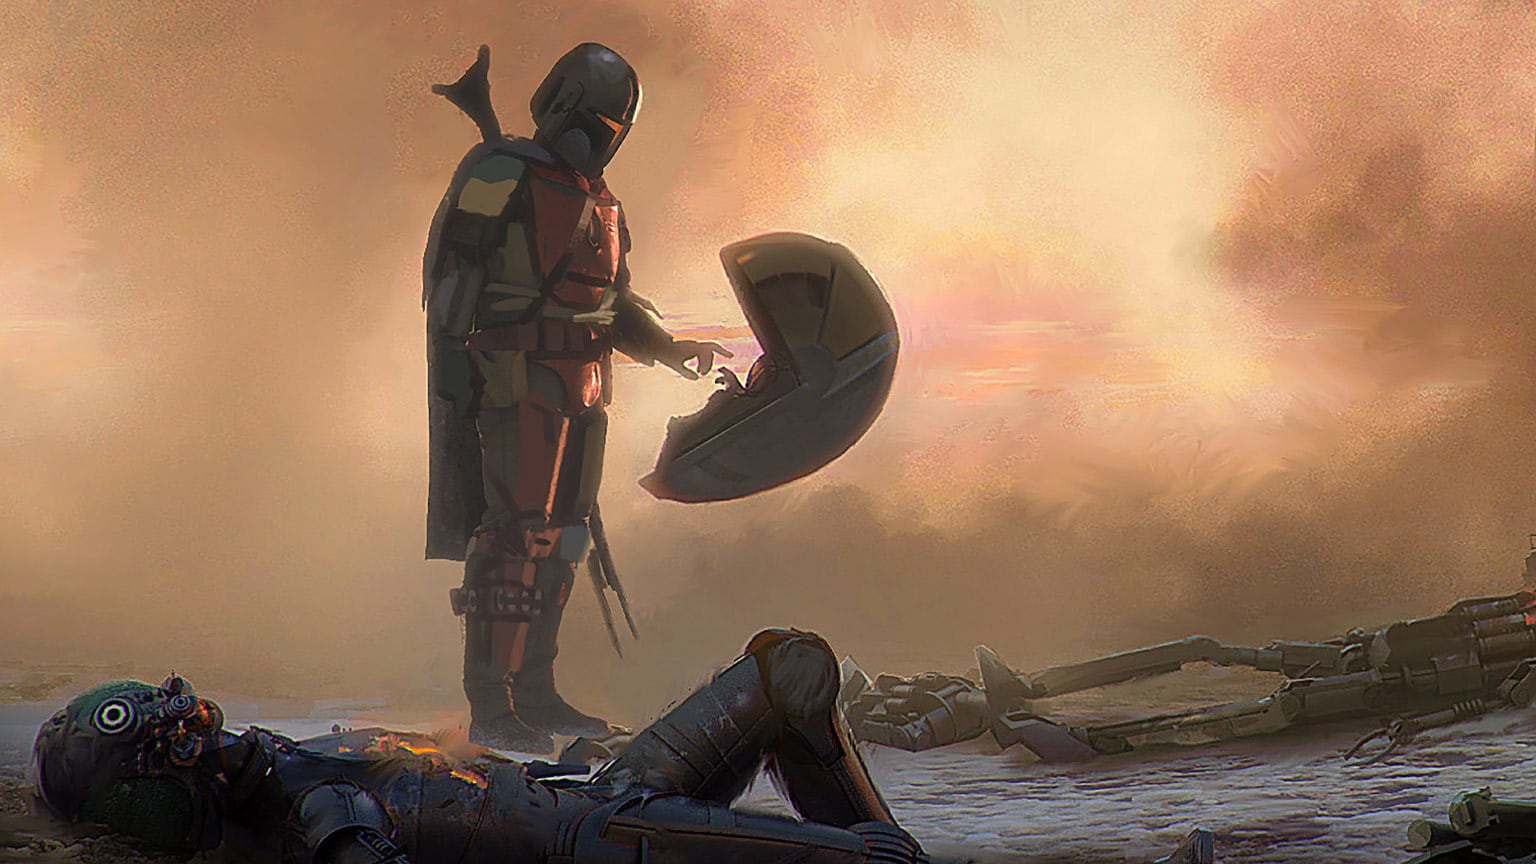 How The Art of The Mandalorian Takes Readers on a Visual Journey of Creativity